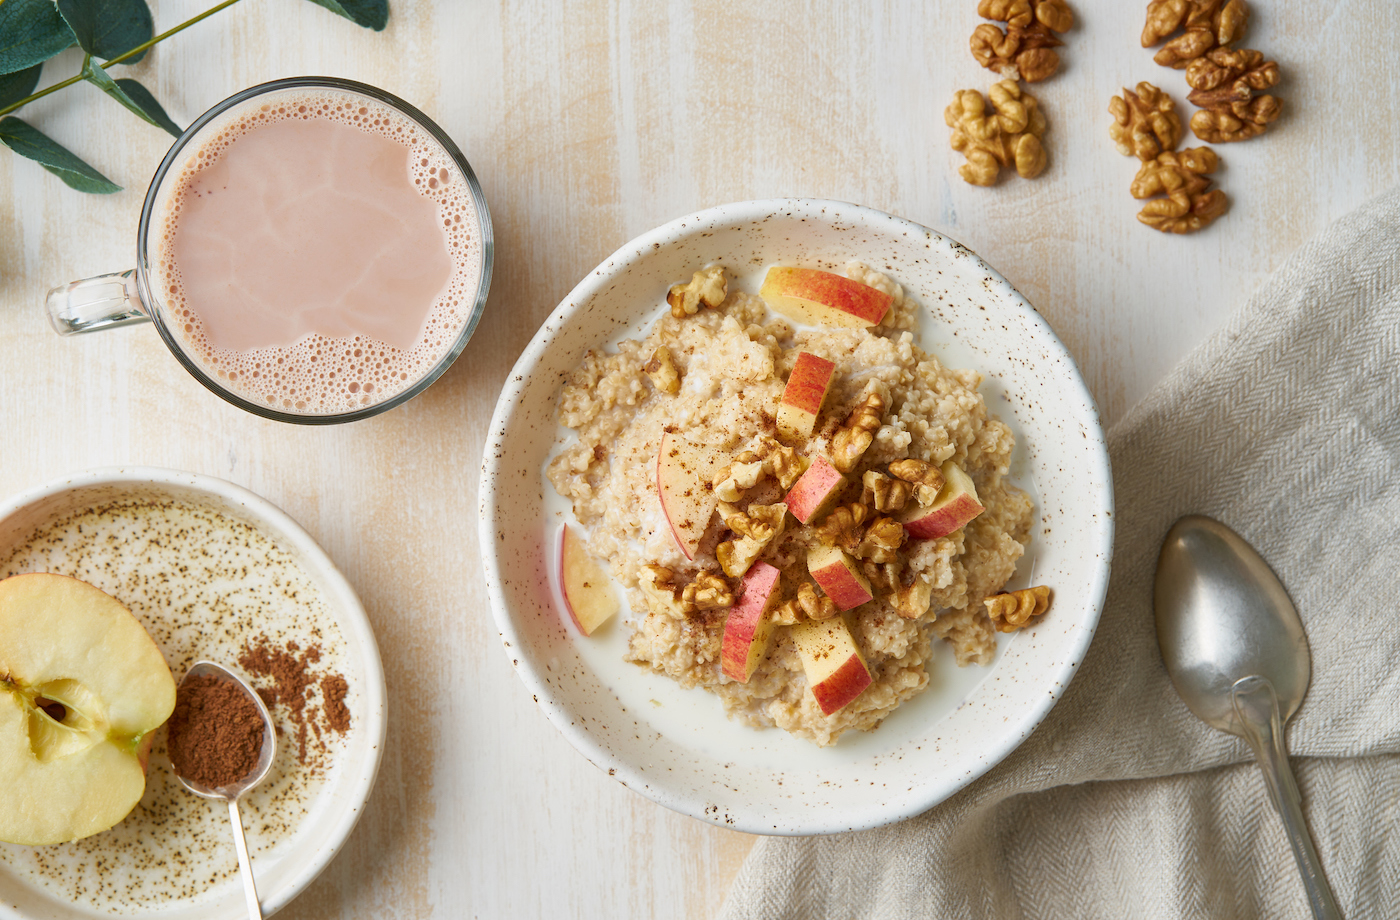 Thumbnail for 4 Easy Plant-Based Breakfasts You Can Make in 5 Minutes or Less